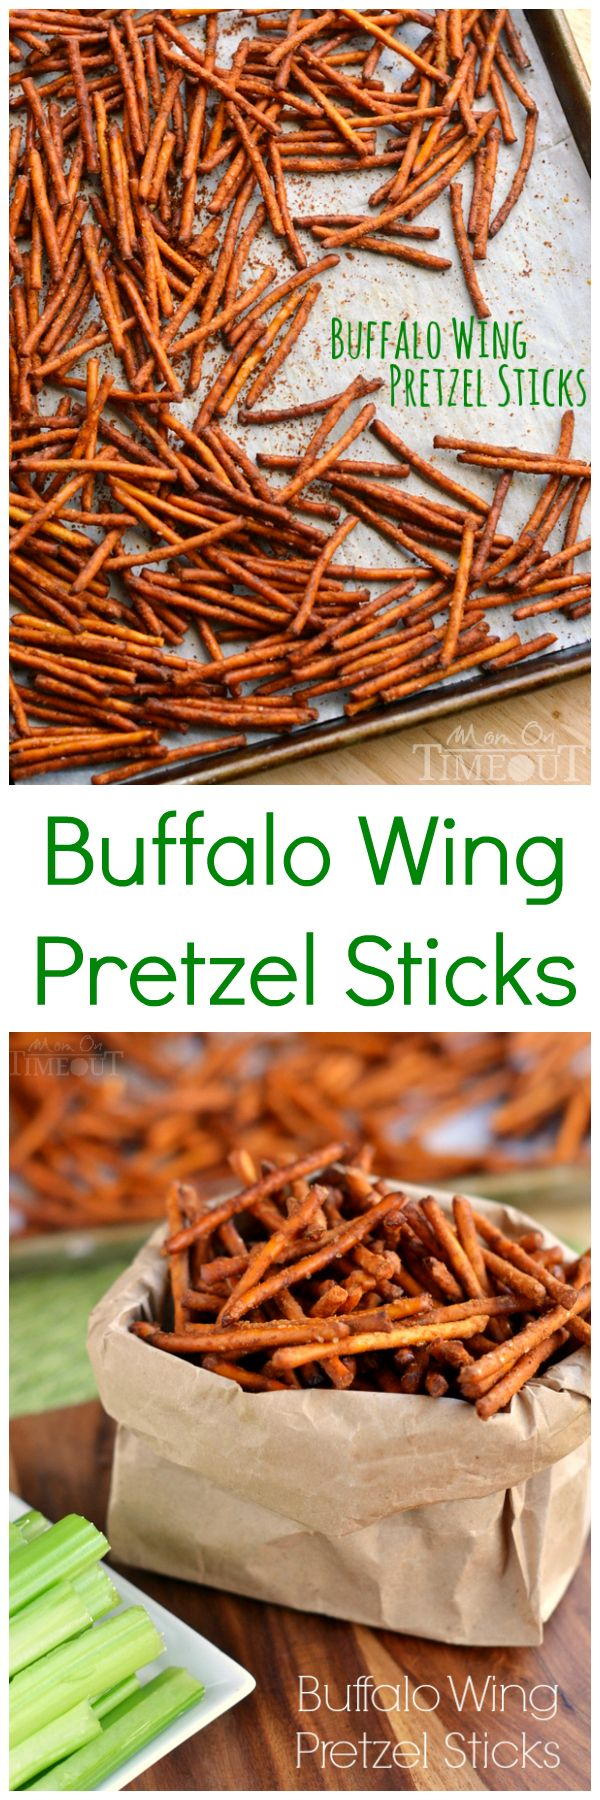 buffalo-wing-pretzel-sticks-recipe